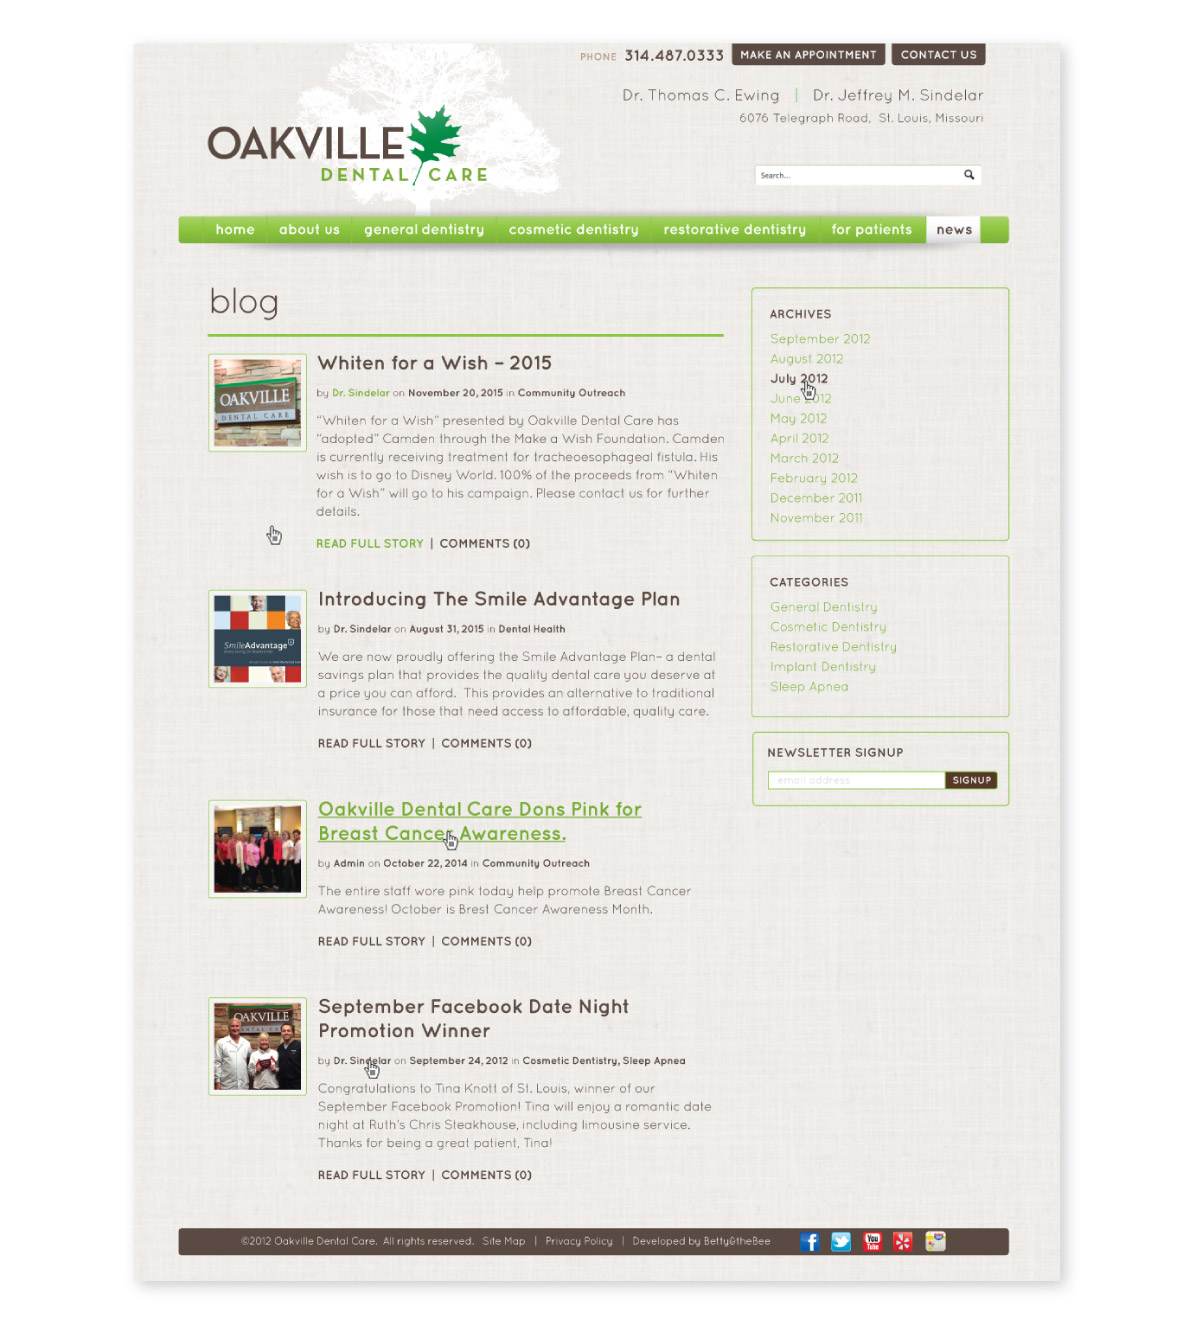 Oakville website interior page